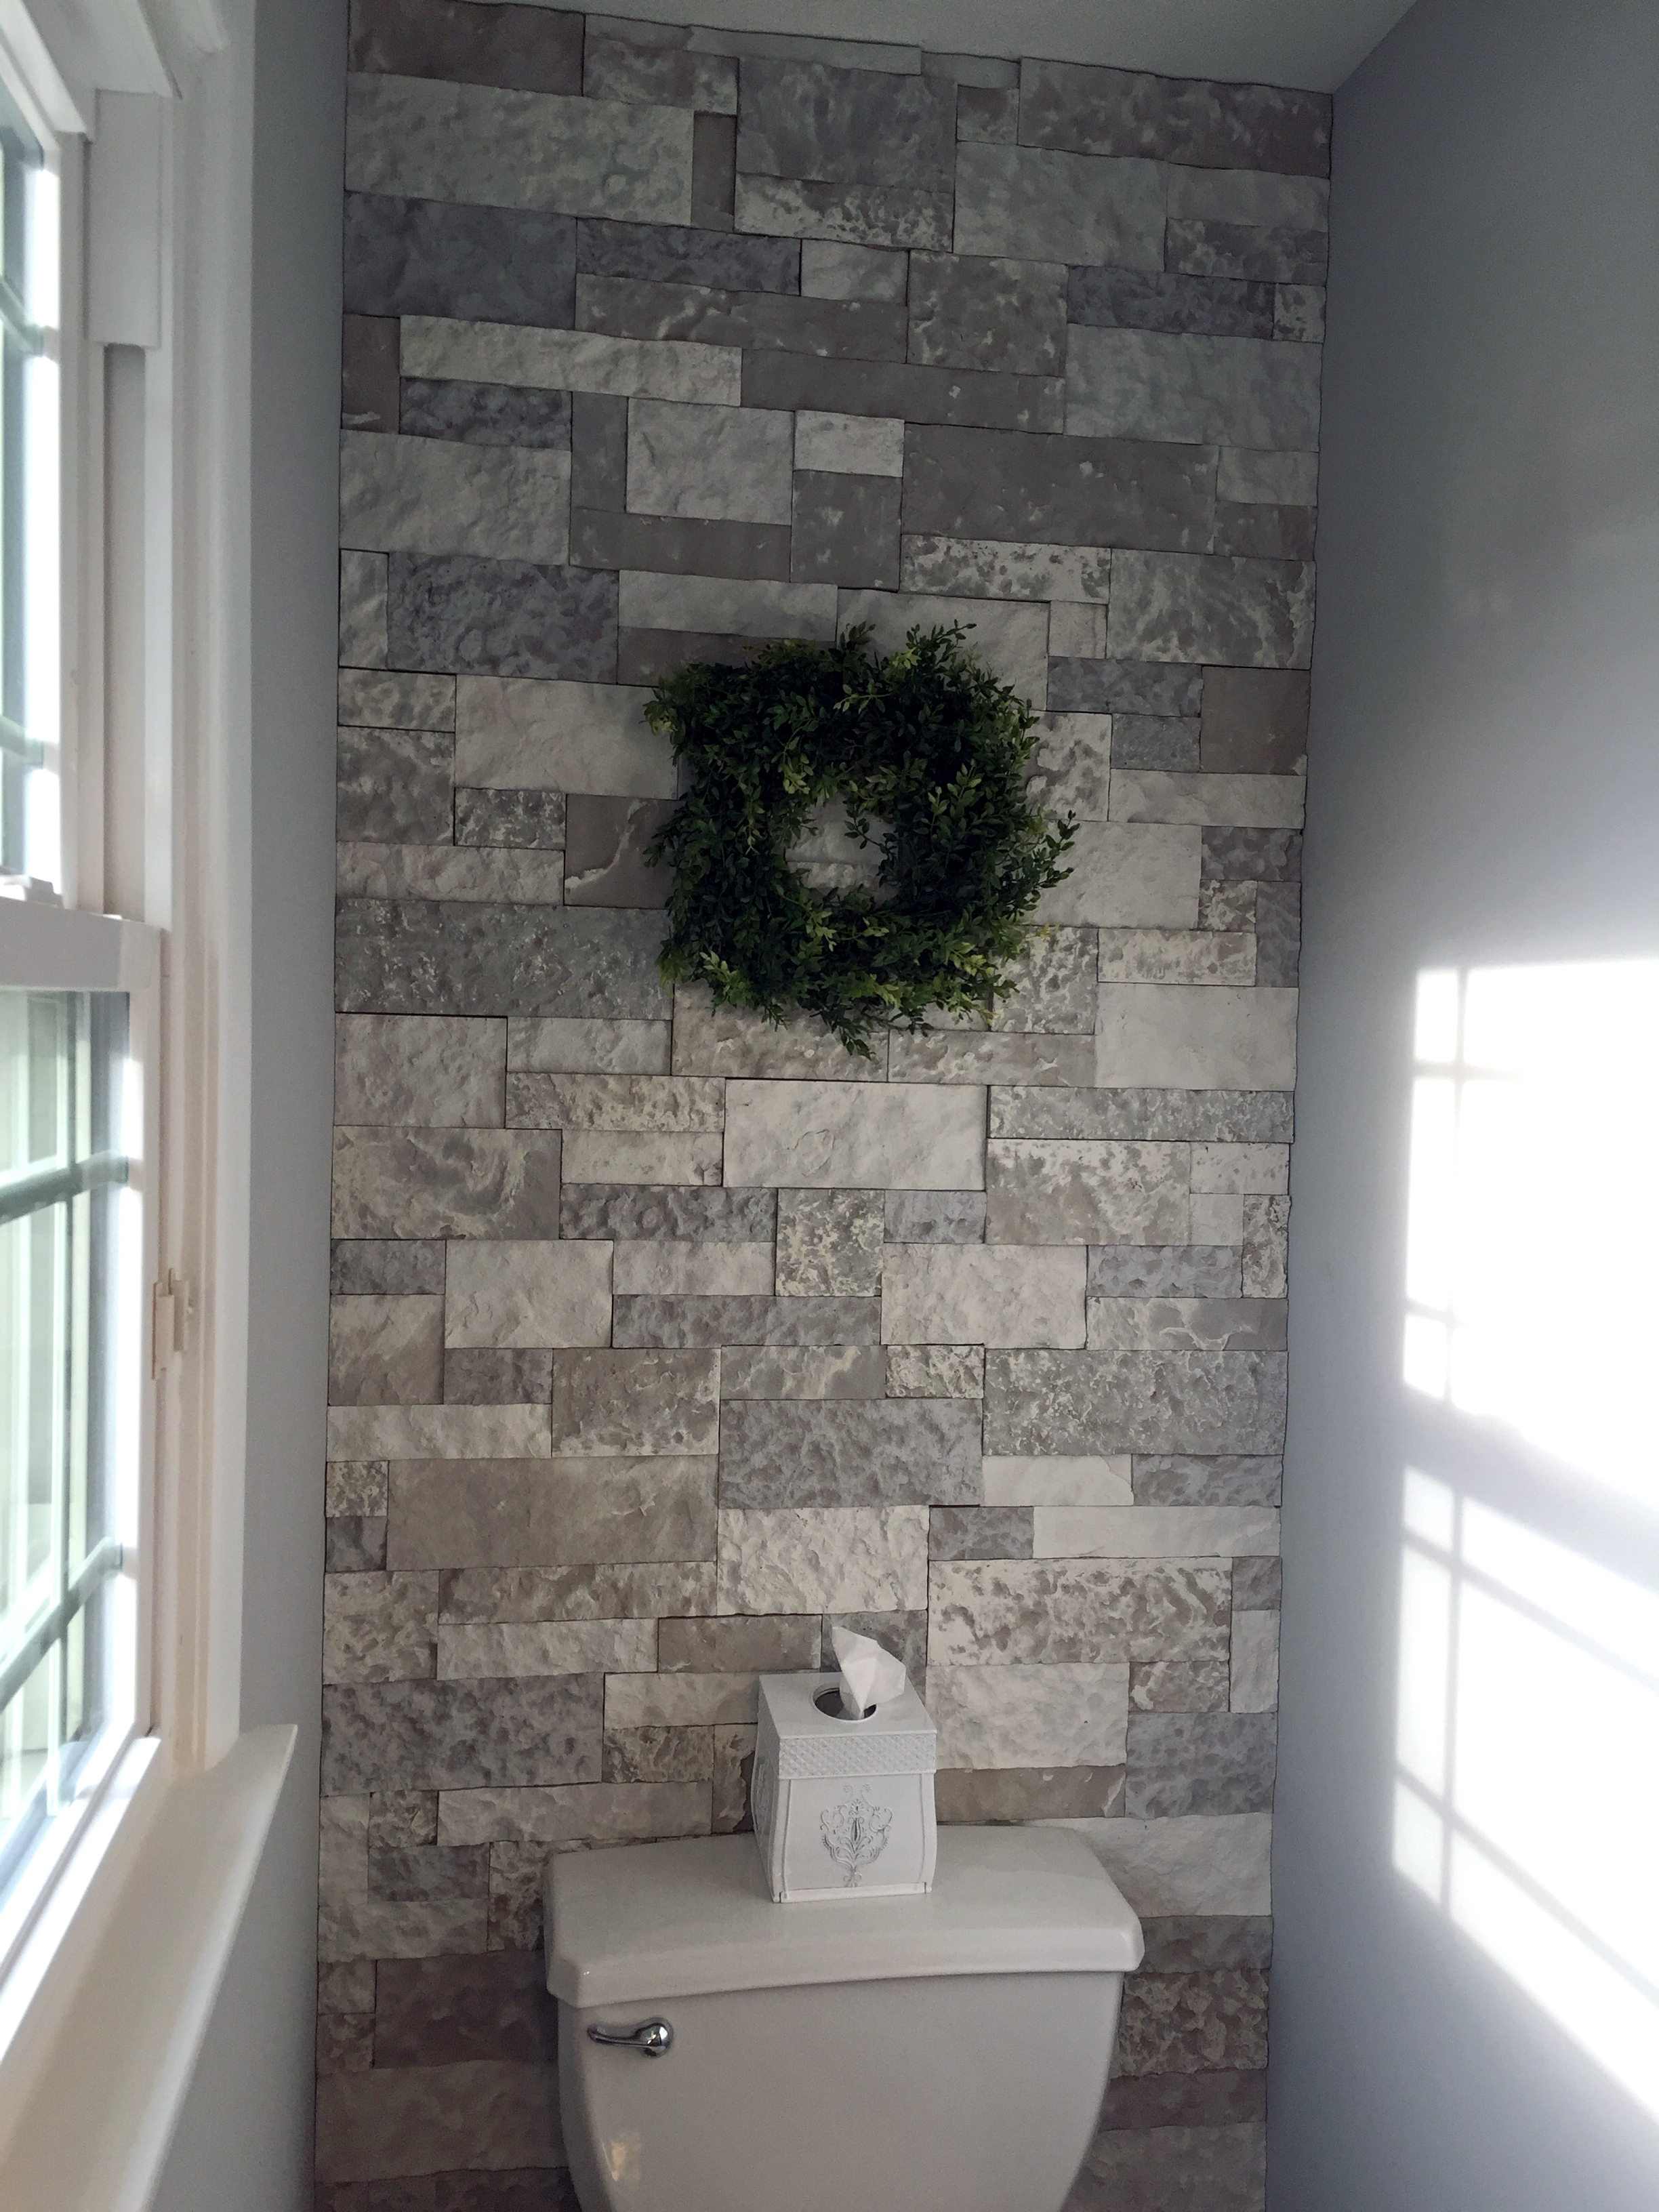 Cool Airstone Accent Wall Bathroom - IMG_0375  Best Photo Reference_164817.jpg?ssl\u003d1